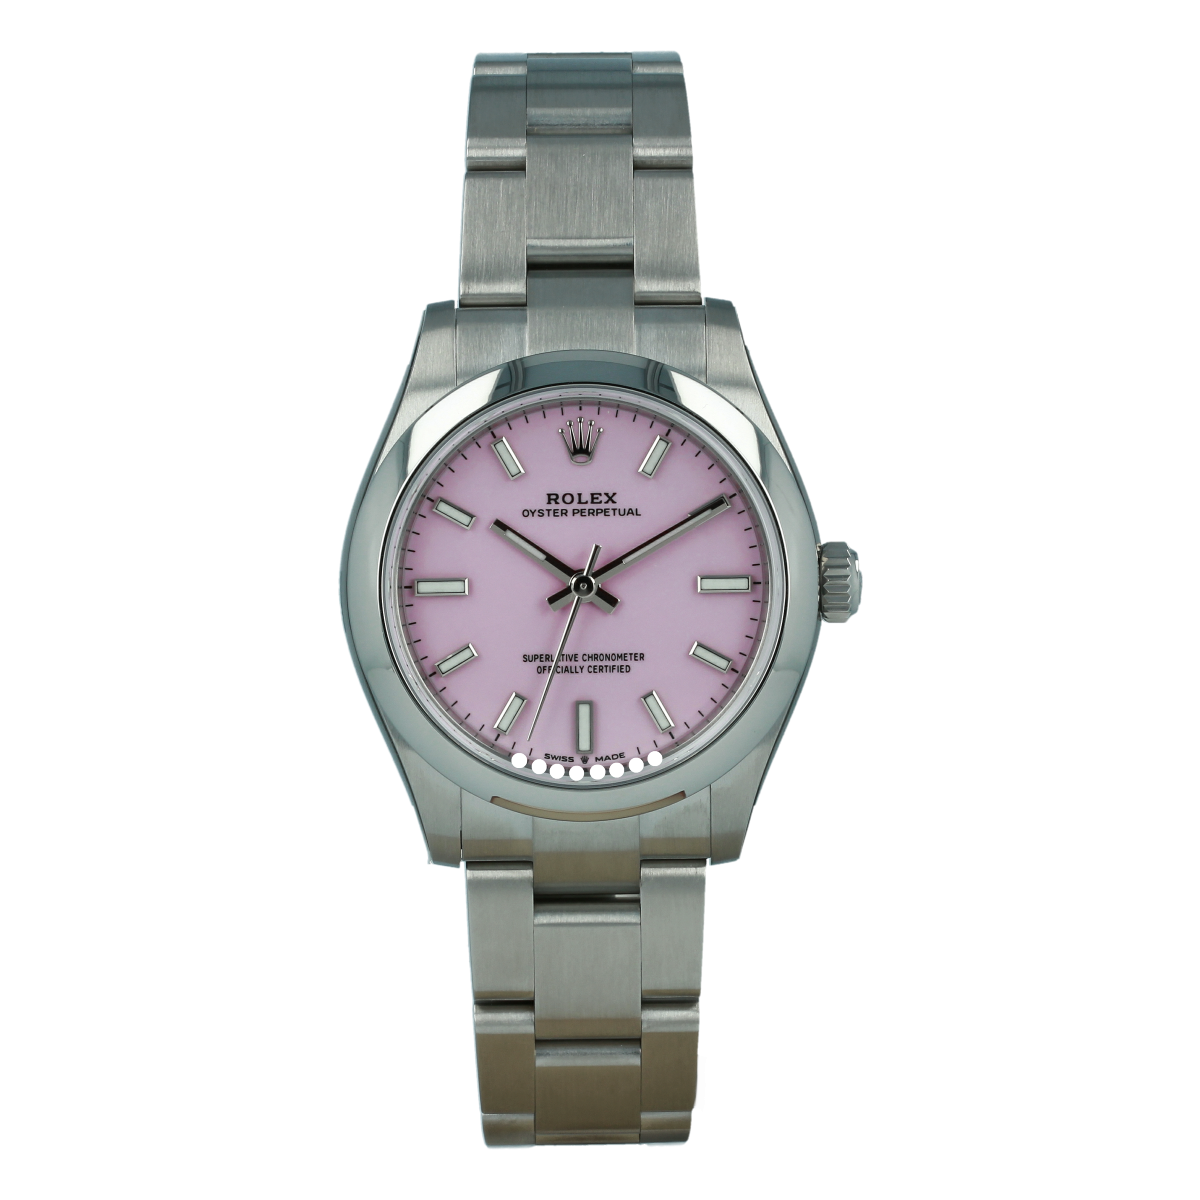 Rolex Oyster Perpetual 277200 31mm Candy Pink Dial *New Model* | Buy pre-owned Rolex watch